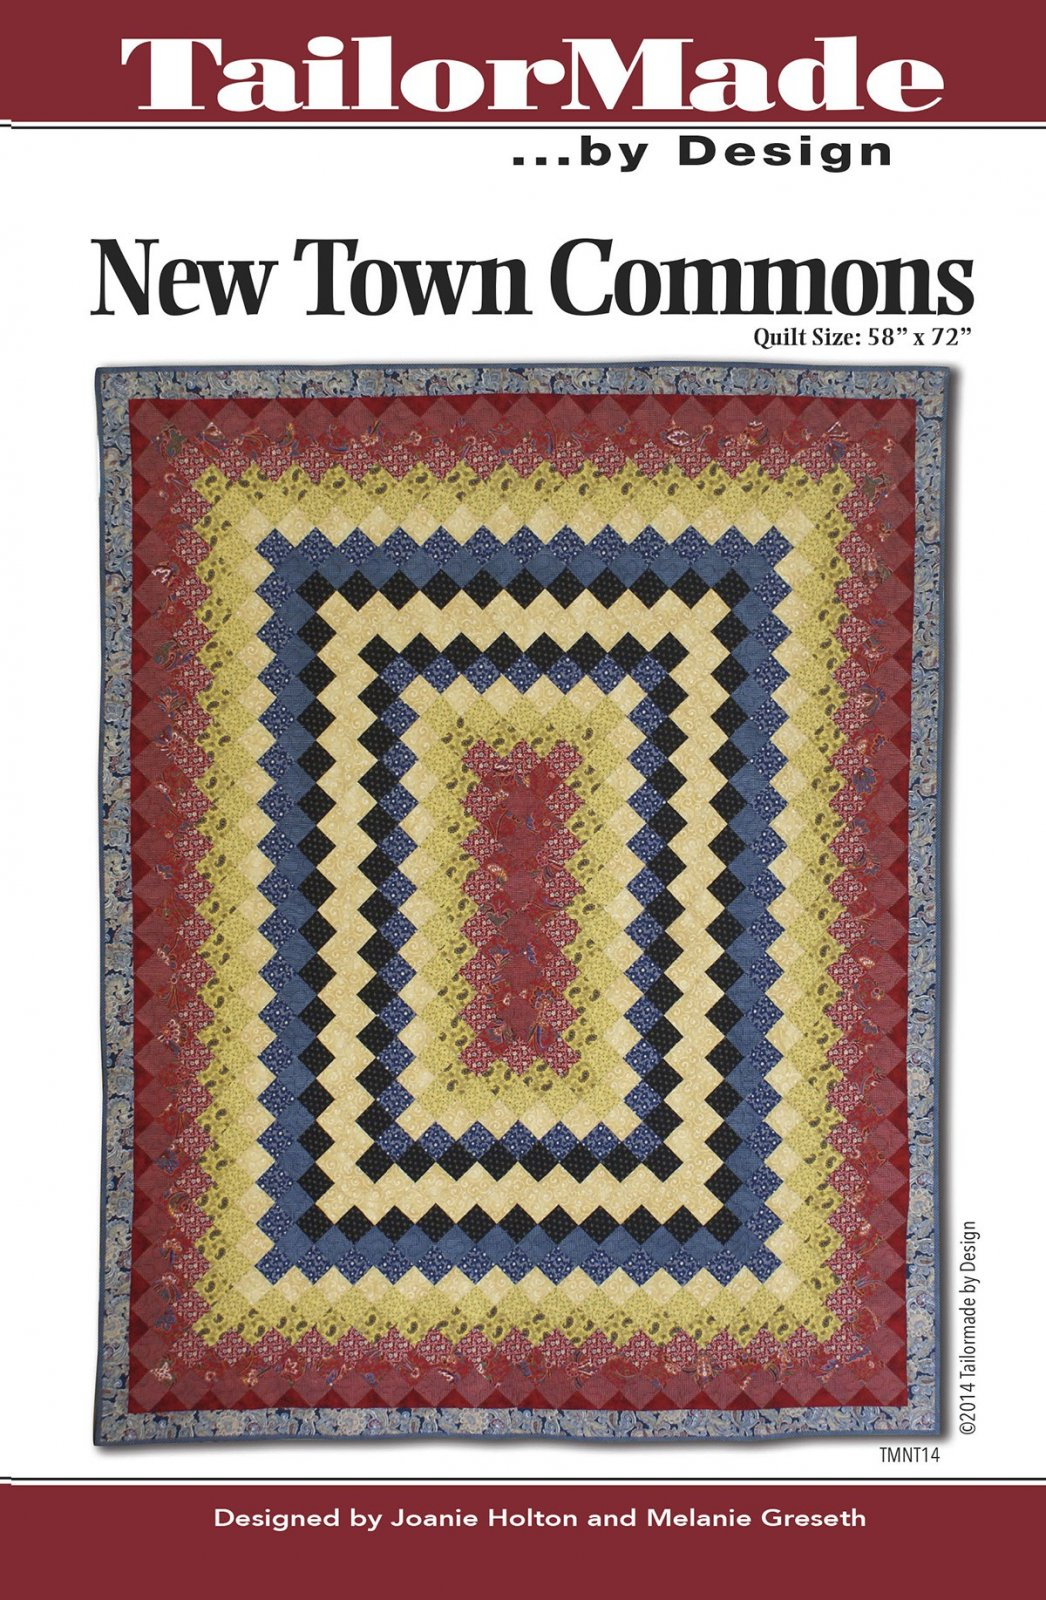 New Town Commons Quilt